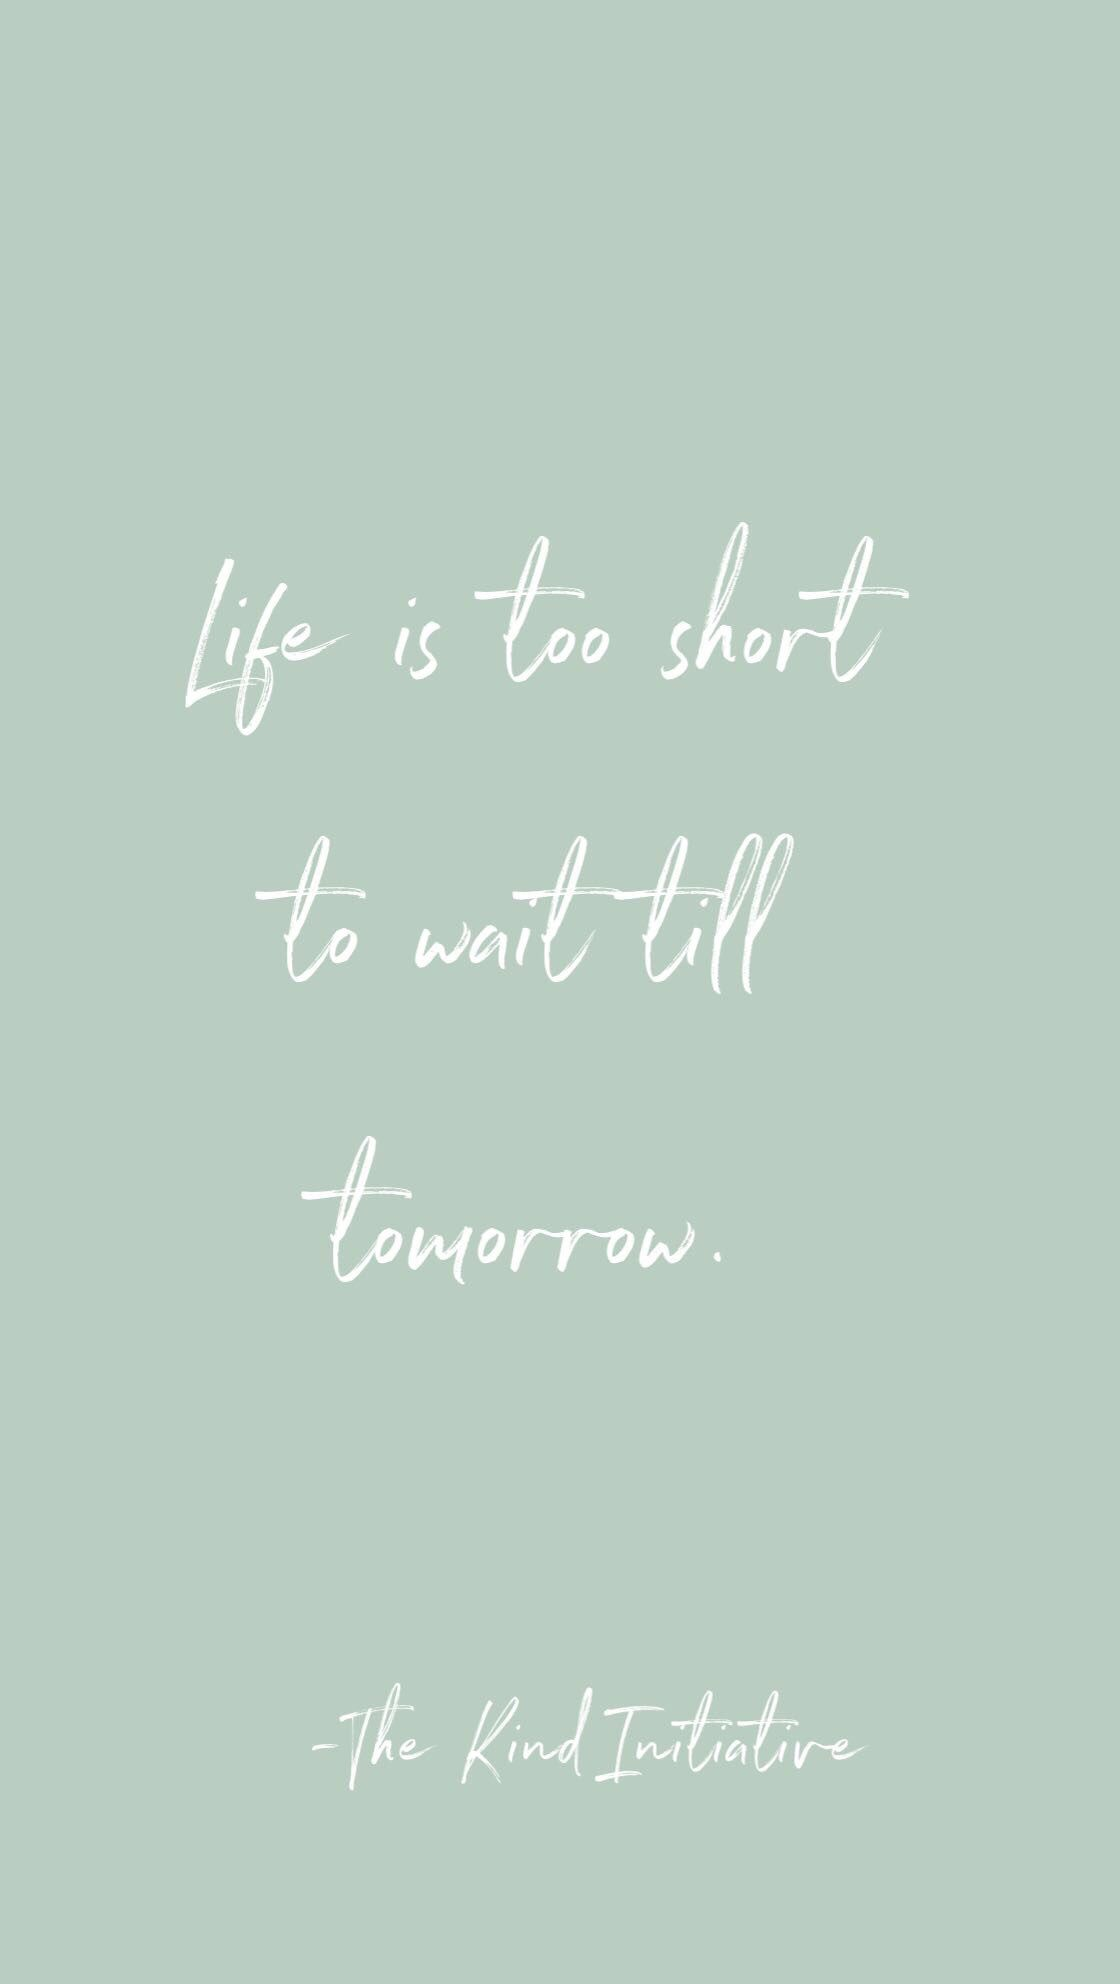 short and sweet quotes for life